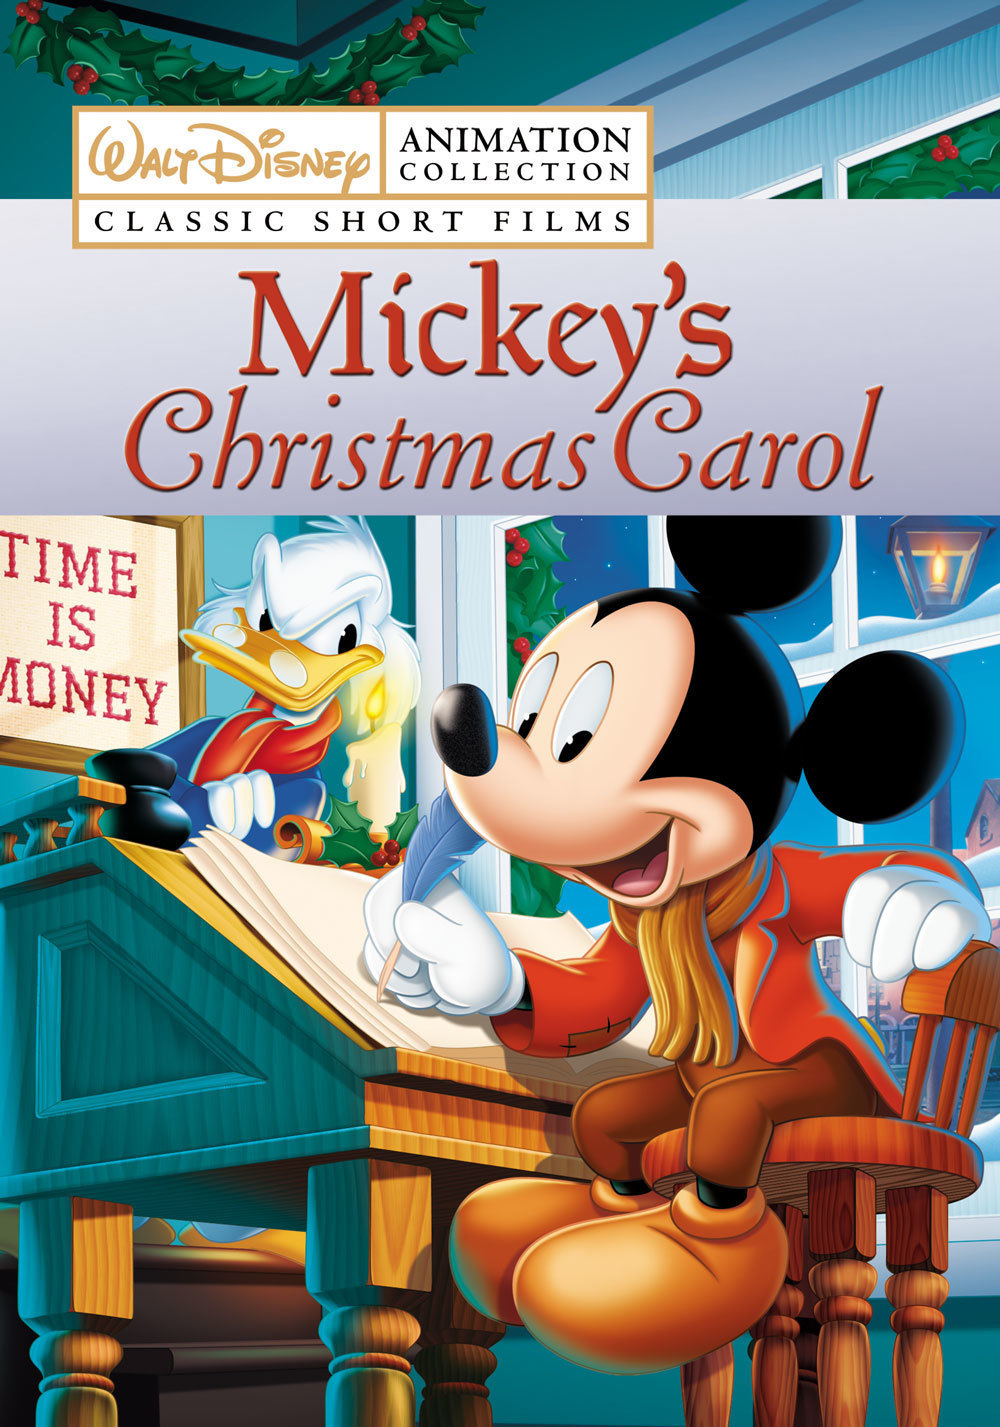 Disney Animation Collection Volume 7: Mickey's Christmas Carol